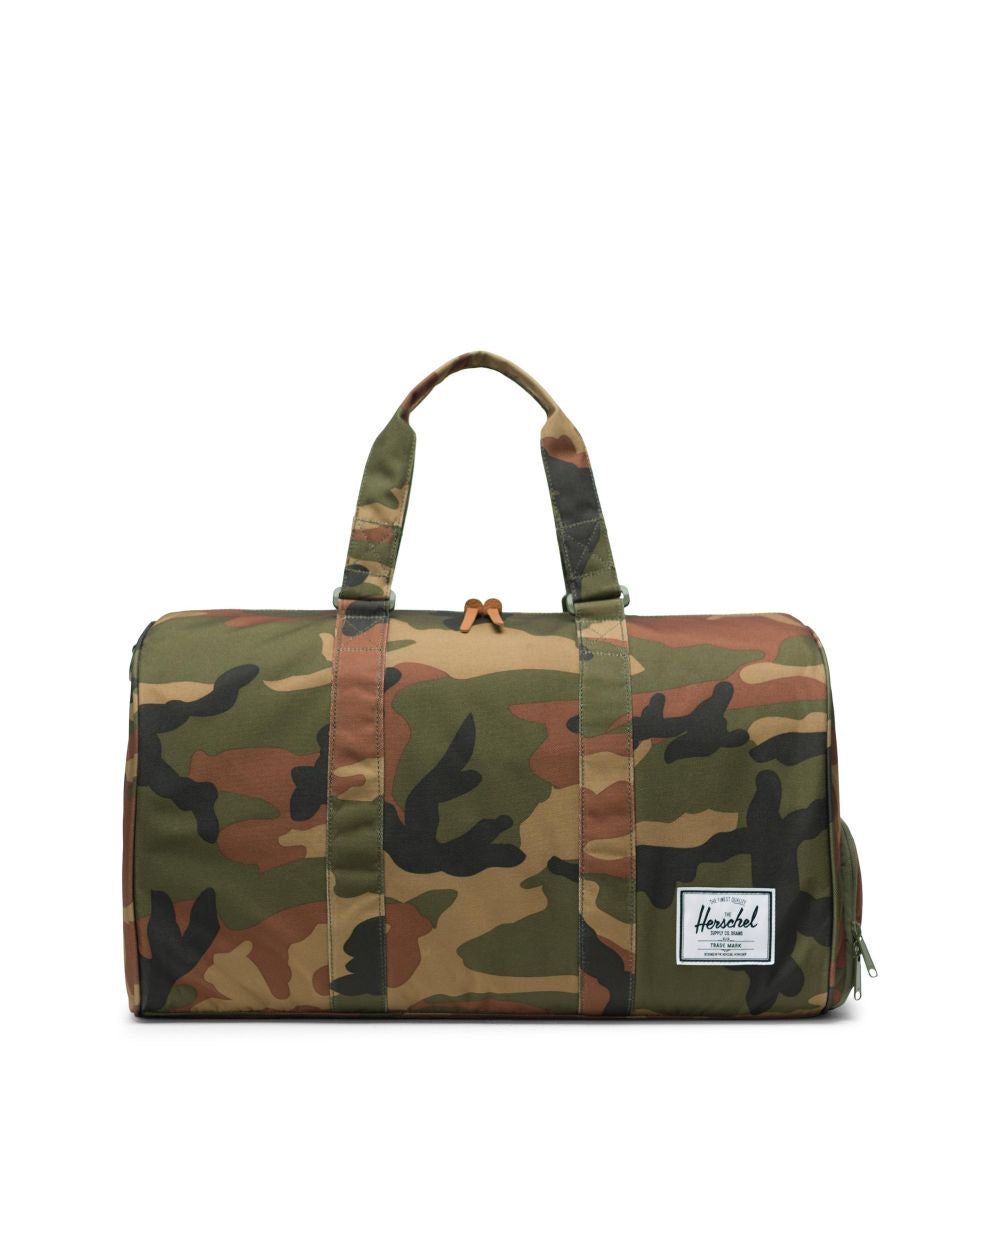 HERSCHEL - NOVEL DUFFLE IN WOODLAND CAMO